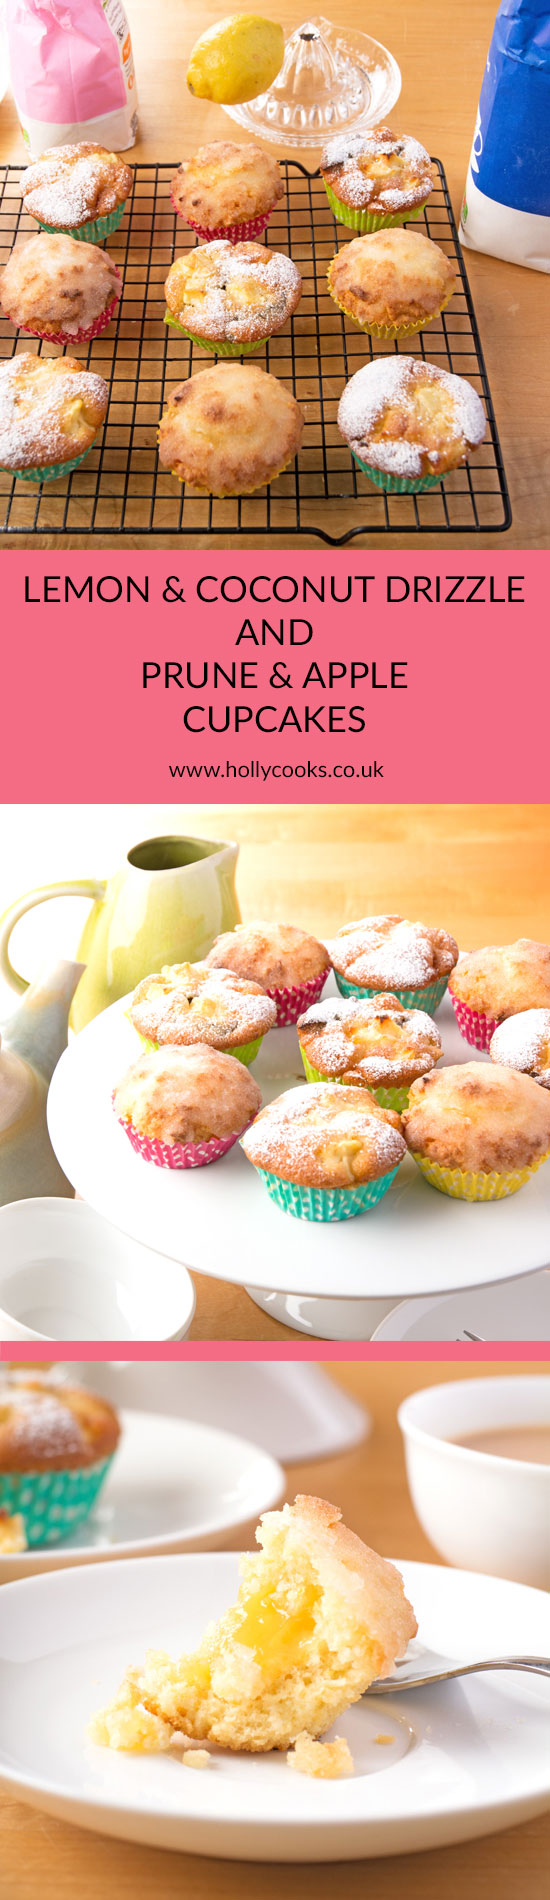 Holly-cooks-coconut-and-lemon-drizzle-and-apple-and-prune-cupcakes-pinterest